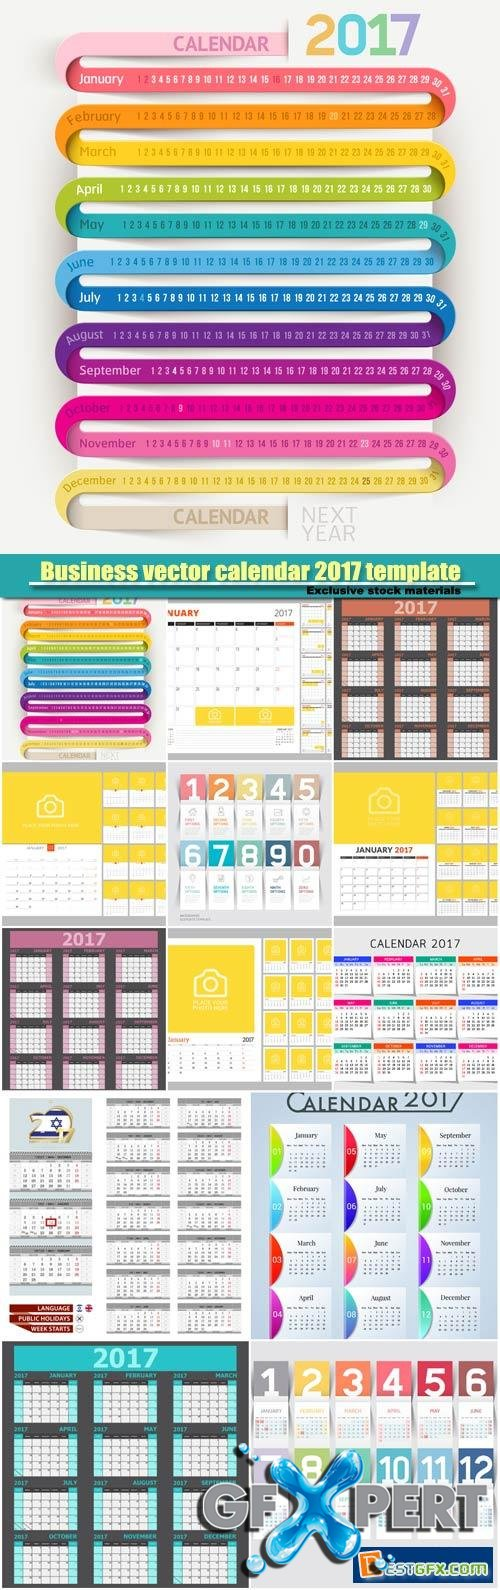 Corporate Calendar 2017 : Free business vector calendar template design download